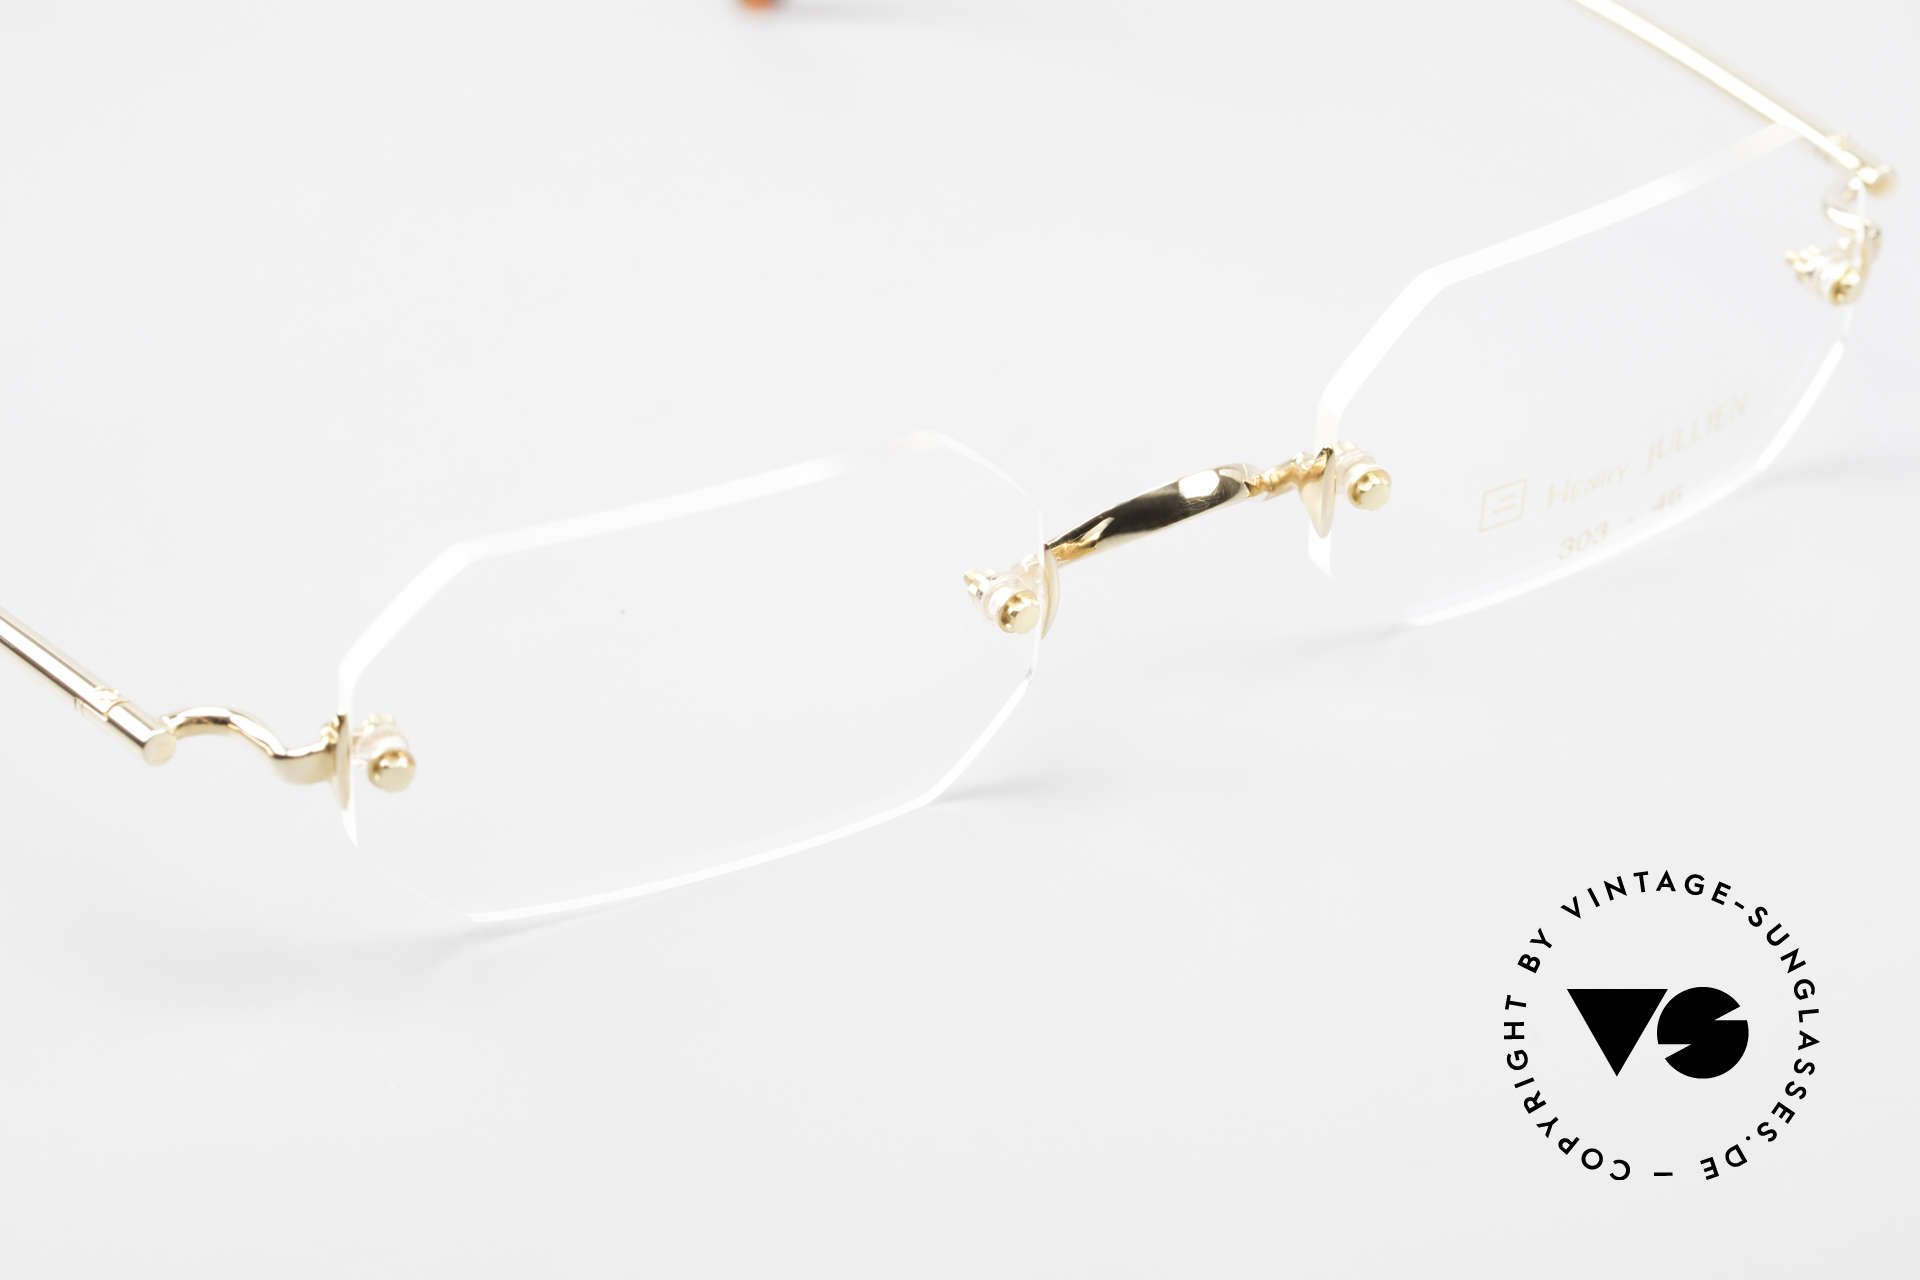 Henry Jullien Paraphe 303 Octagonal Rimless Frame, NO RETRO specs; but an authentic rarity from 2008, Made for Men and Women